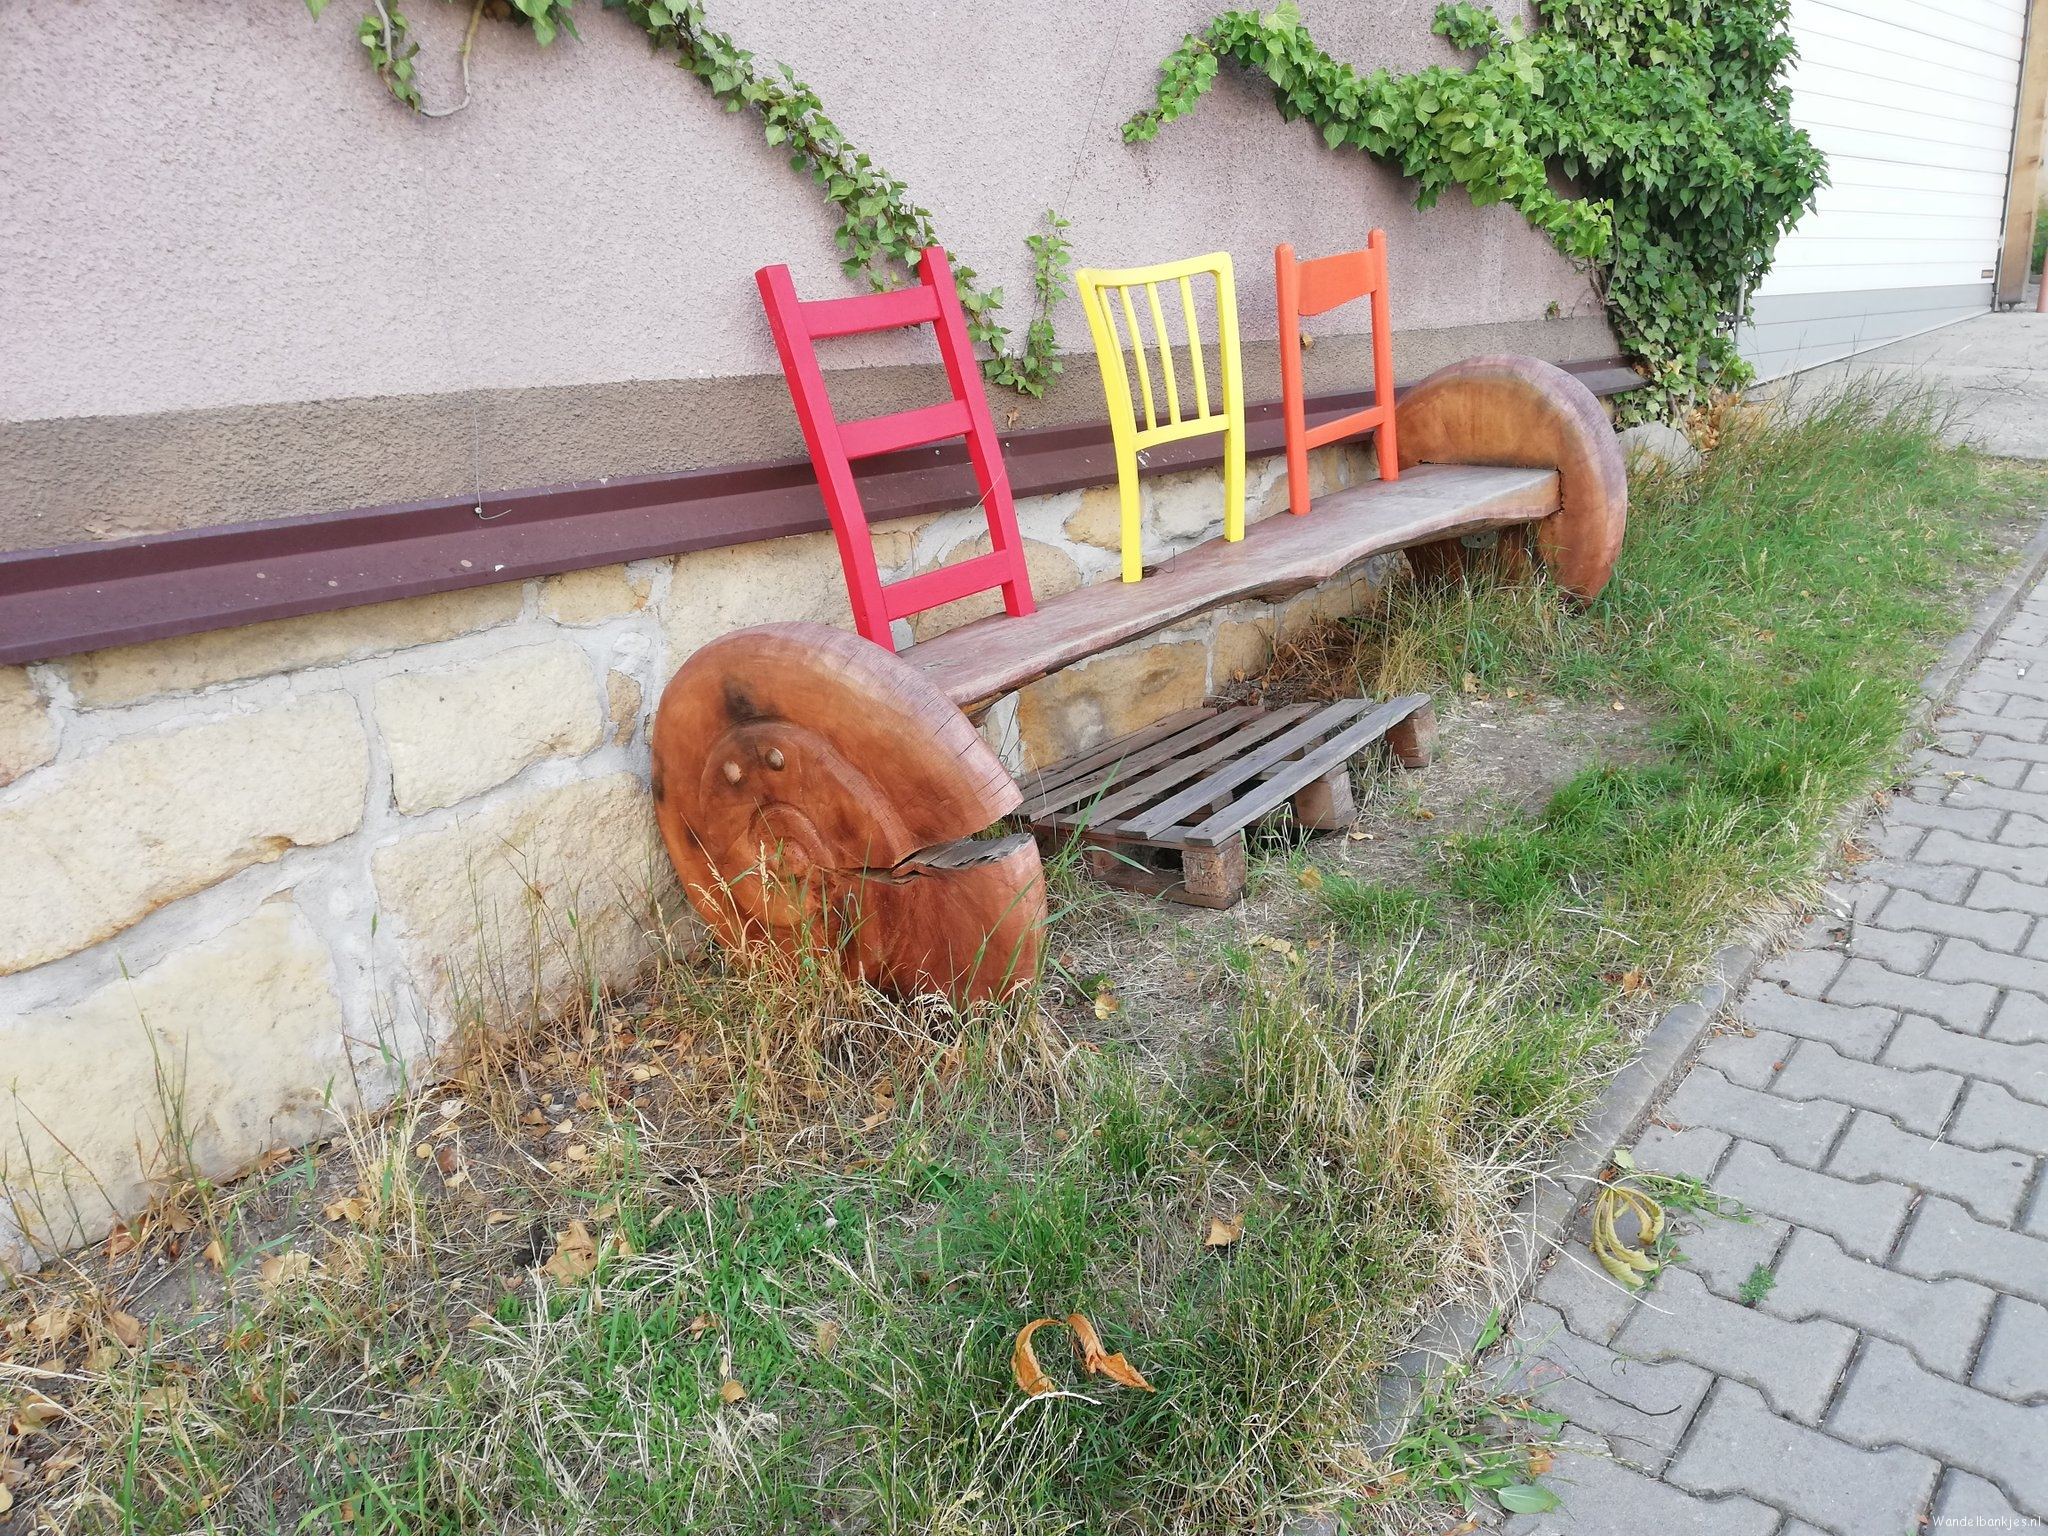 rt-walburgism-a-compound-bench-along-the-labe-elbe-in-decin-czech-hike-halls-https-t-co-a93ke4xhub